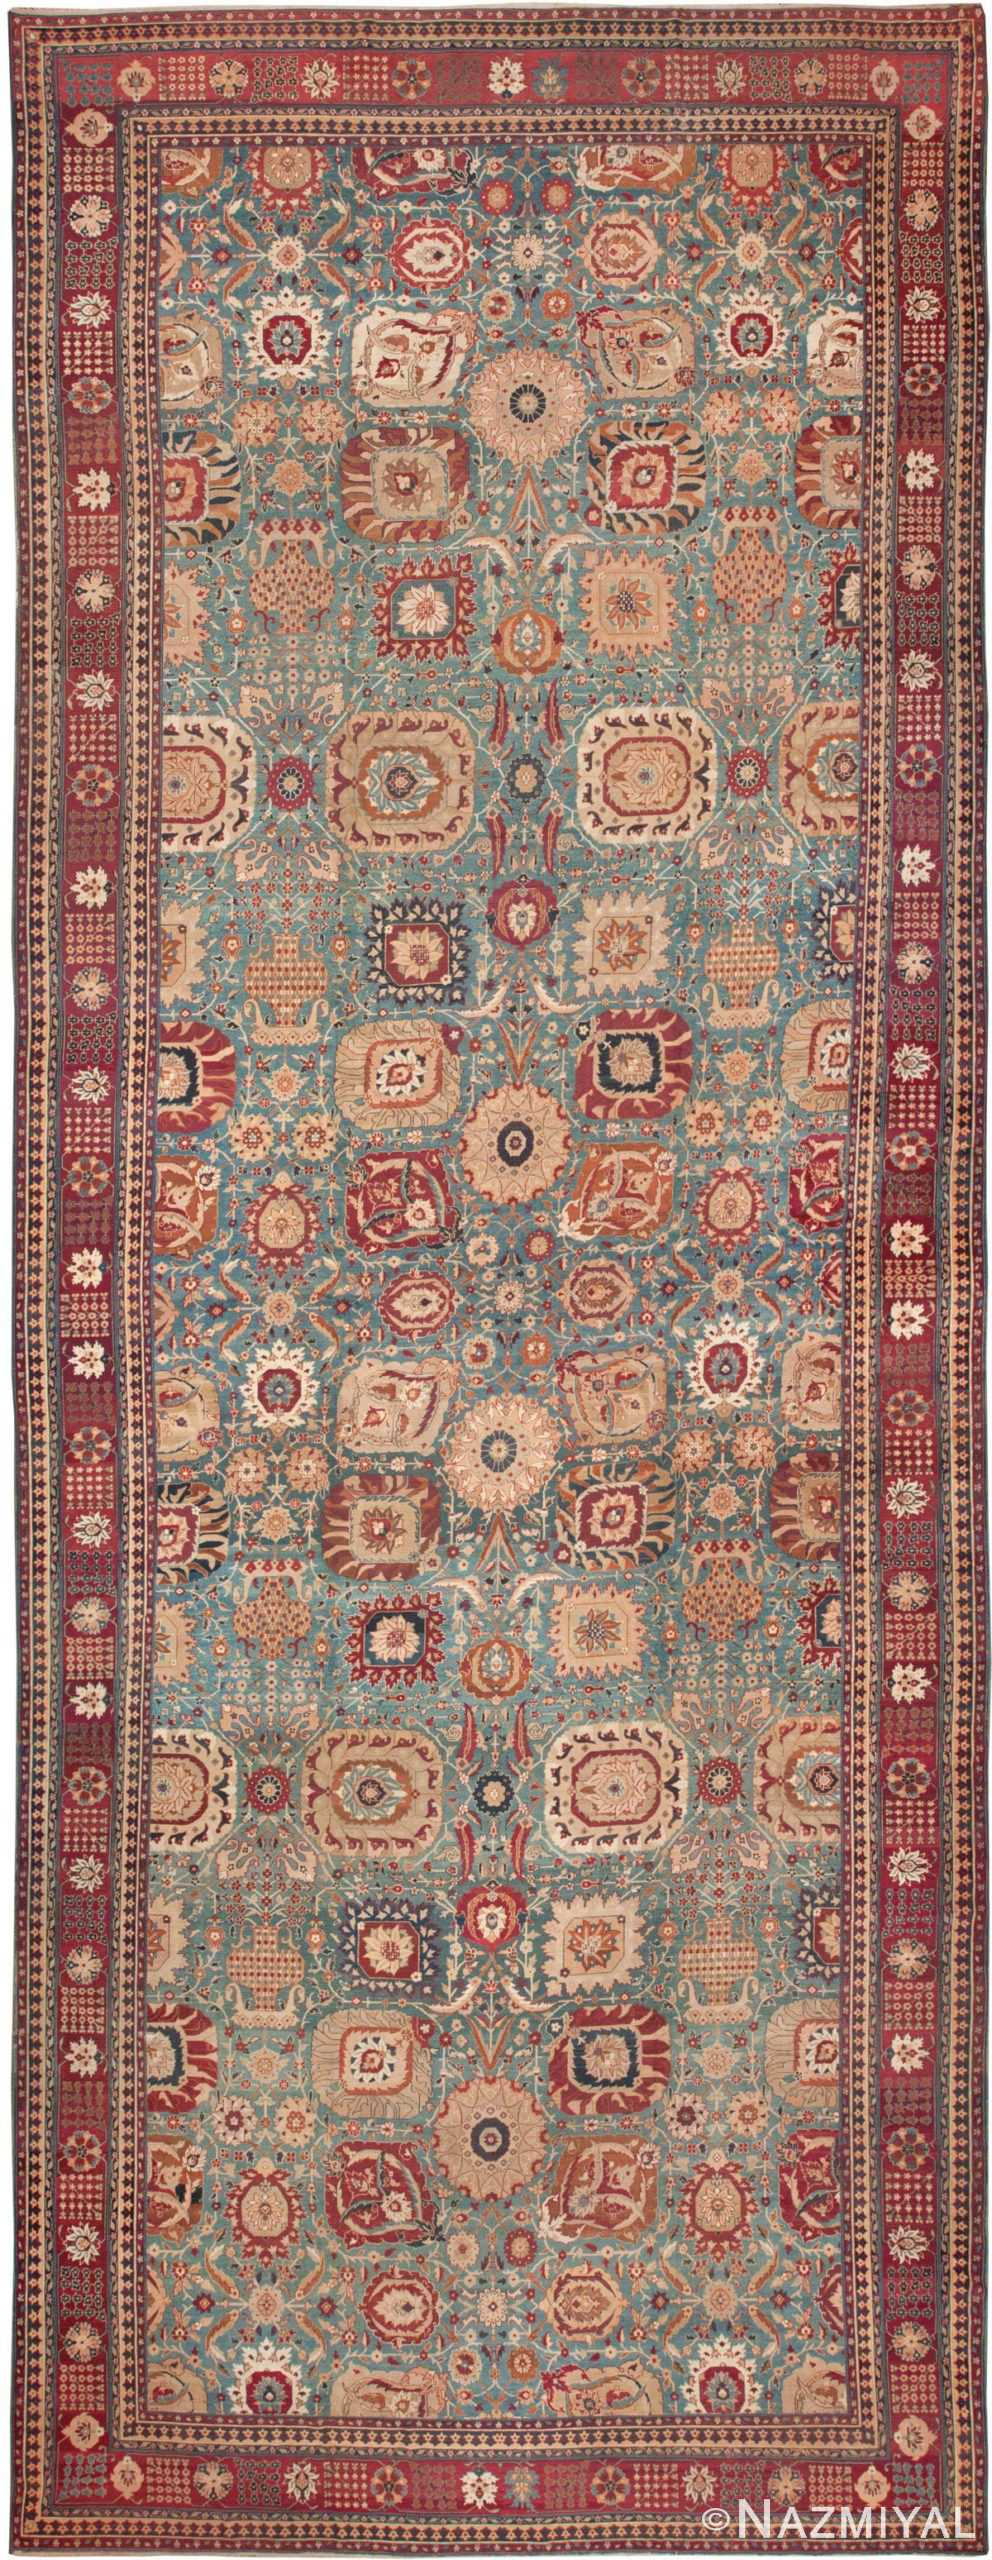 Tappeti Aubusson Vintage Oversized Rugs Antique Oversize Rugs Nazmiyal Antique Rugs